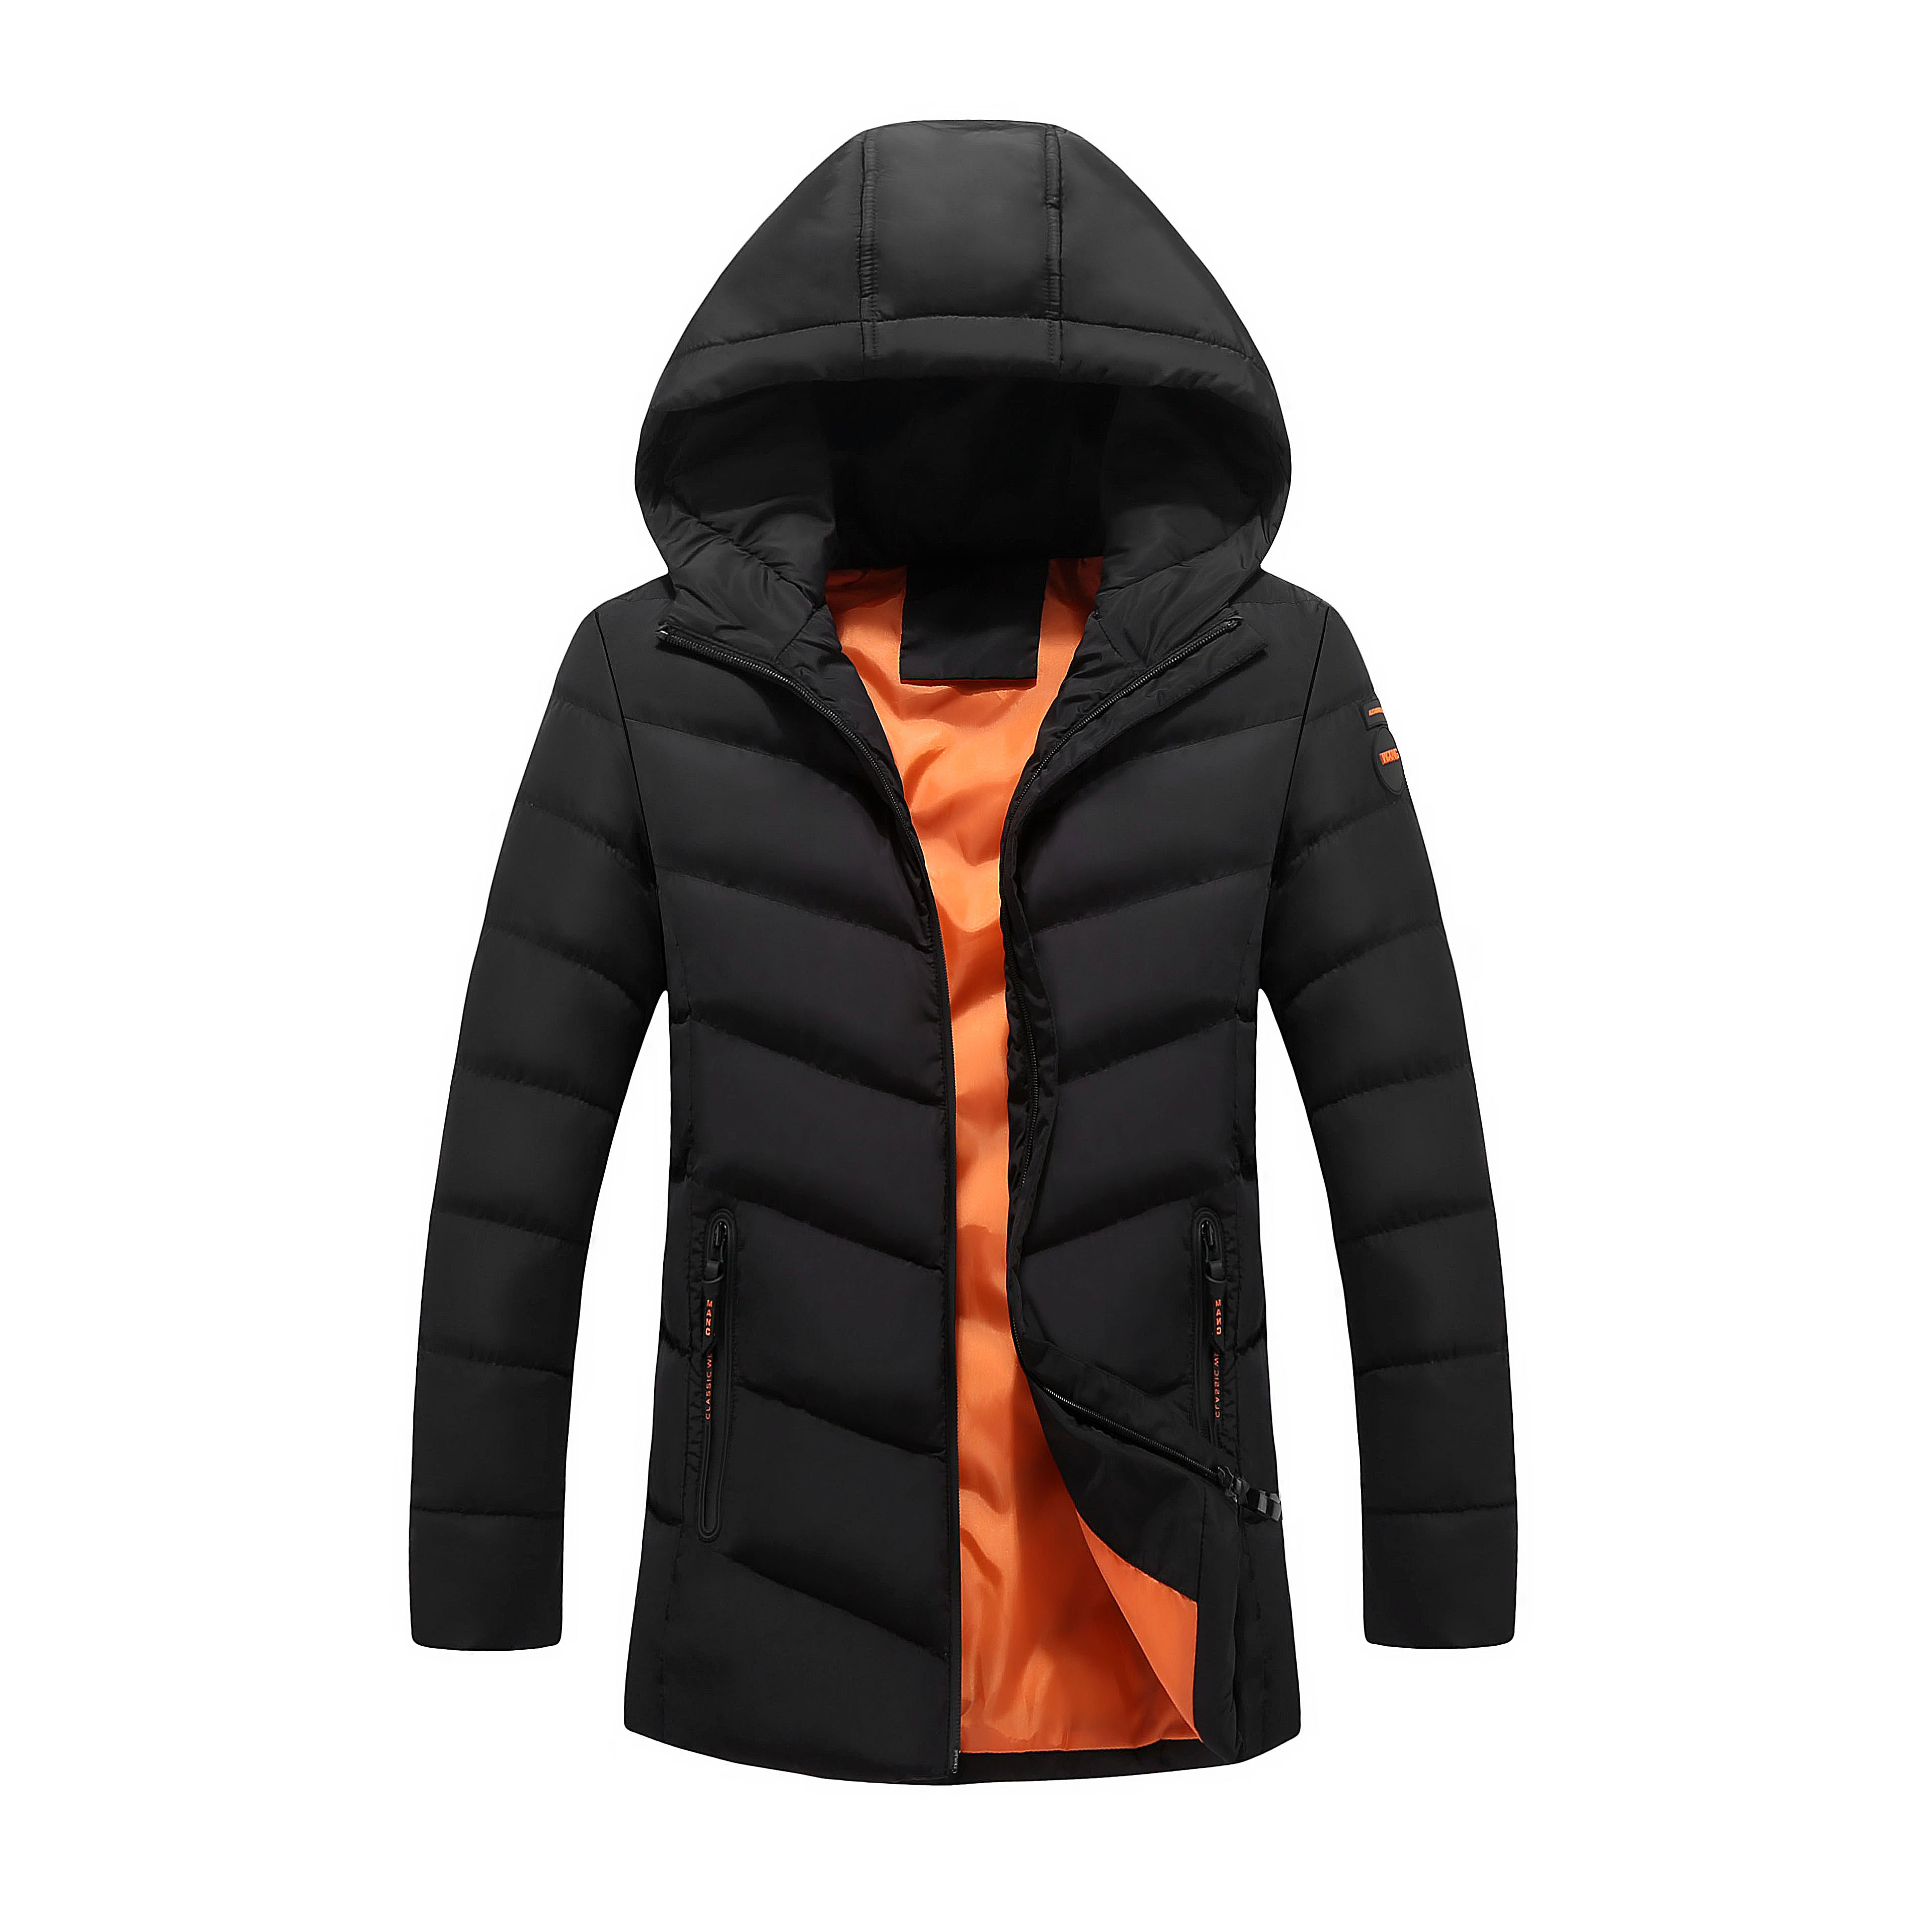 Woodvoice Casual Winter Jacket Men Warm Solid Hoodies Parka Man Brand Long Section Coat Male Thick Outwear Clothes Veste Hommes